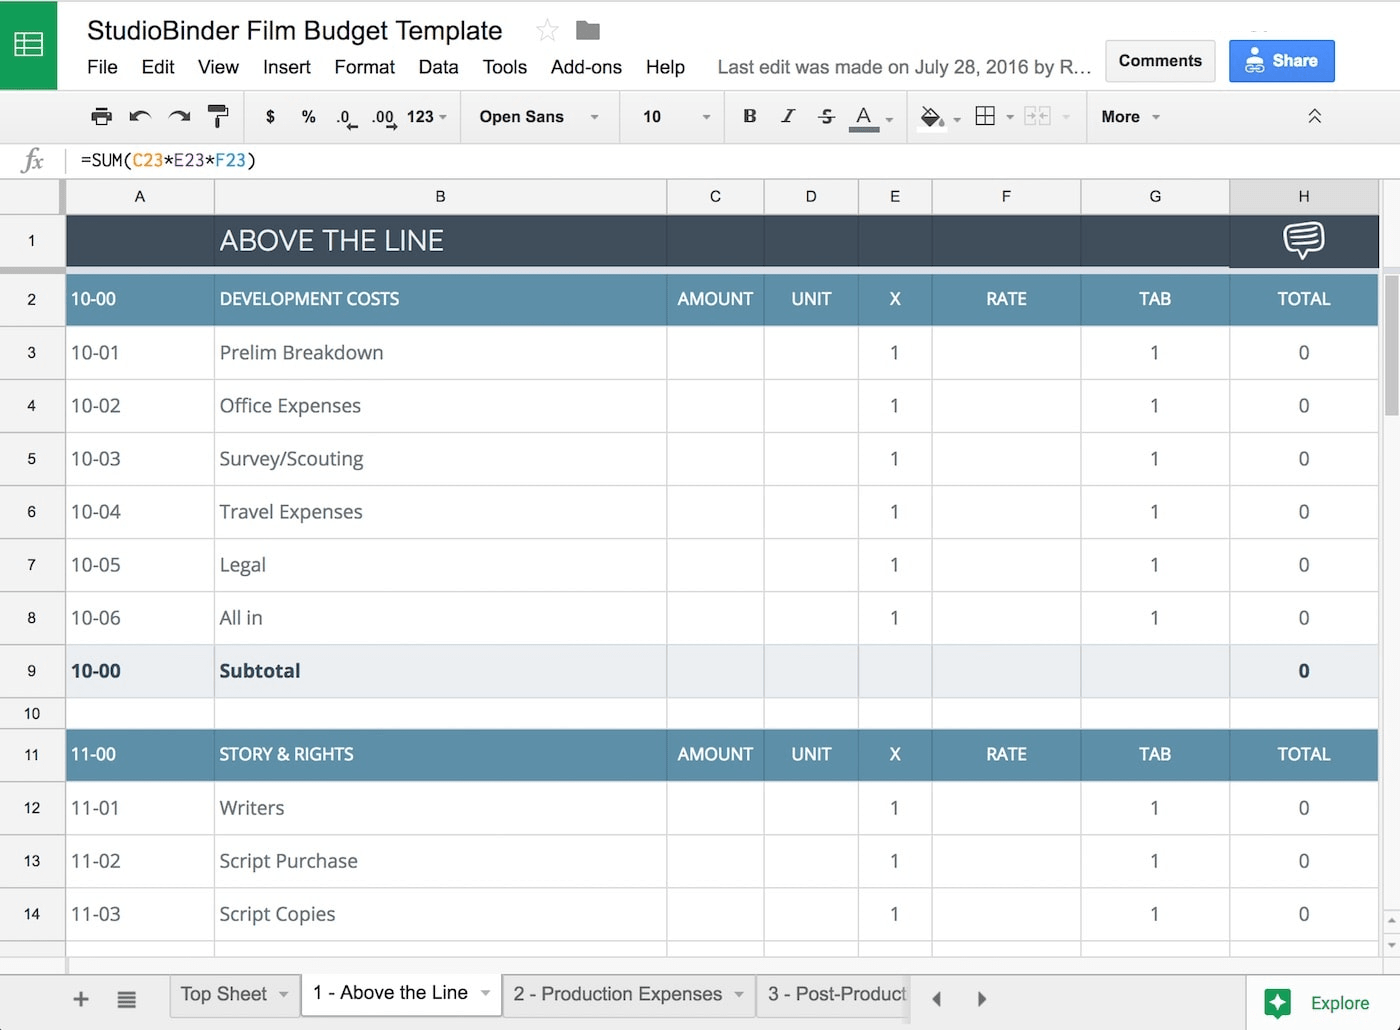 015 Plan Templates Film Budget Template Tv Singular Production